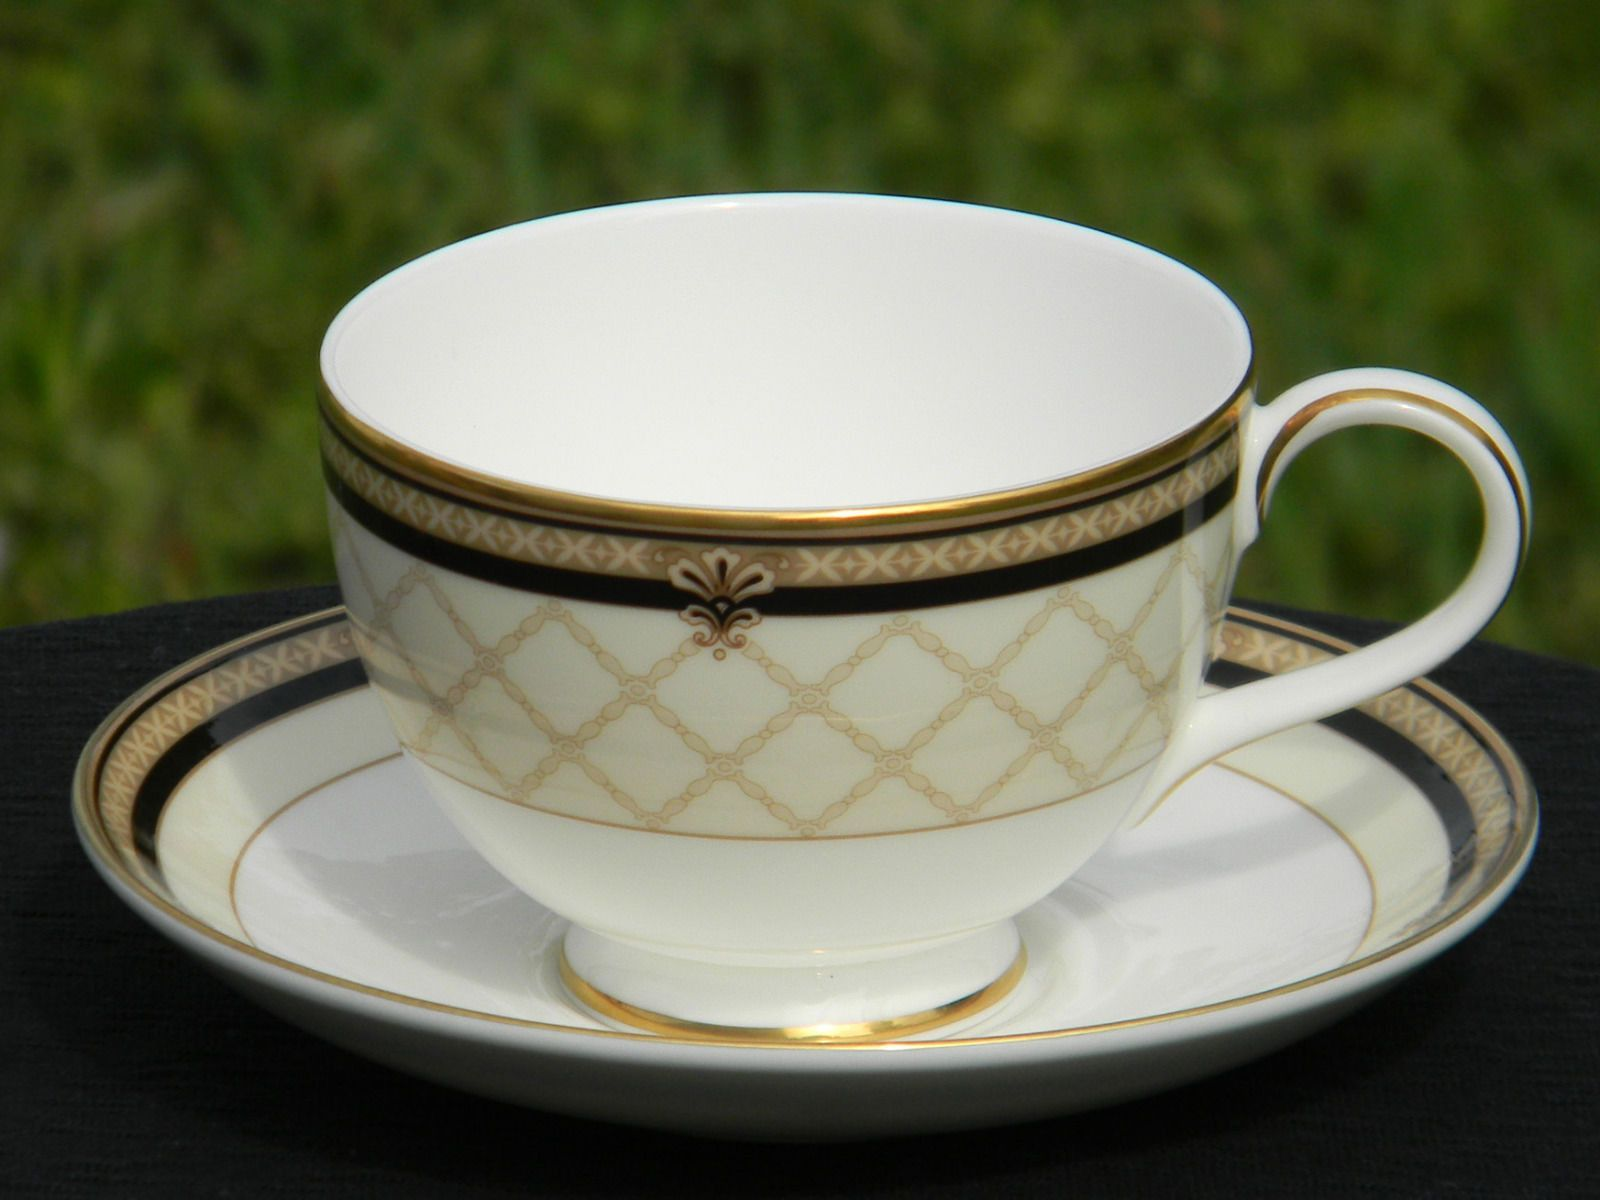 Modern Royal Doulton Teacup and Saucer. Beautiful Cup with a Cream Black and Gold design Crisp White interior. Backst& Reads Royal Doulton BARONESS H ... & Royal Doulton Modern Tea Cup BARONESS Teacup and Saucer J- \u2013 The ...